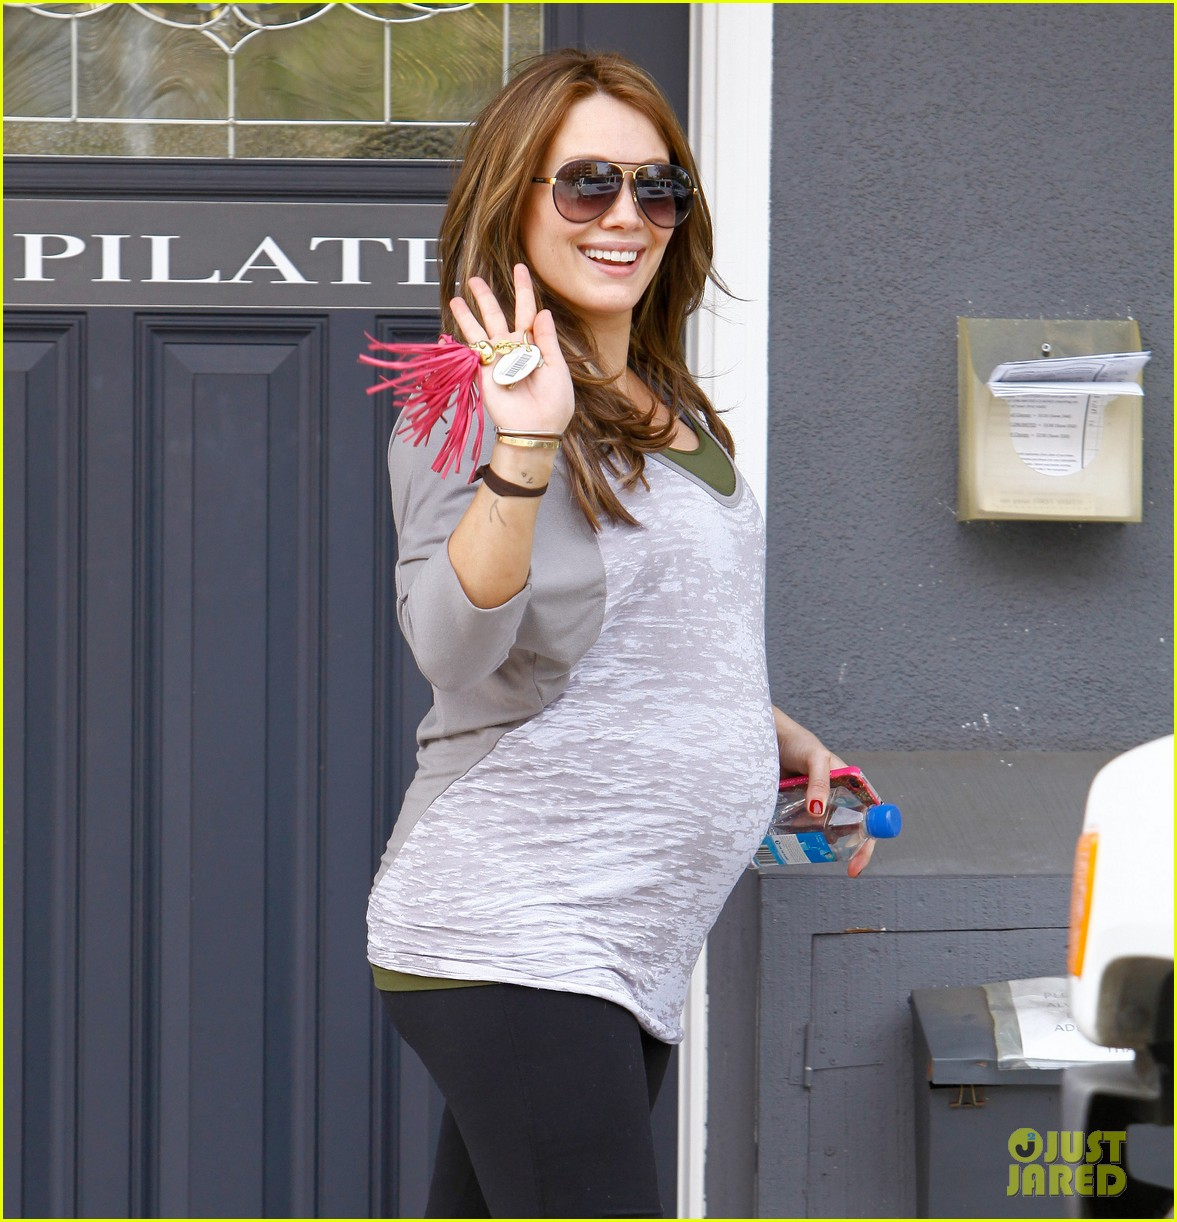 hilary duff pilates workout 01